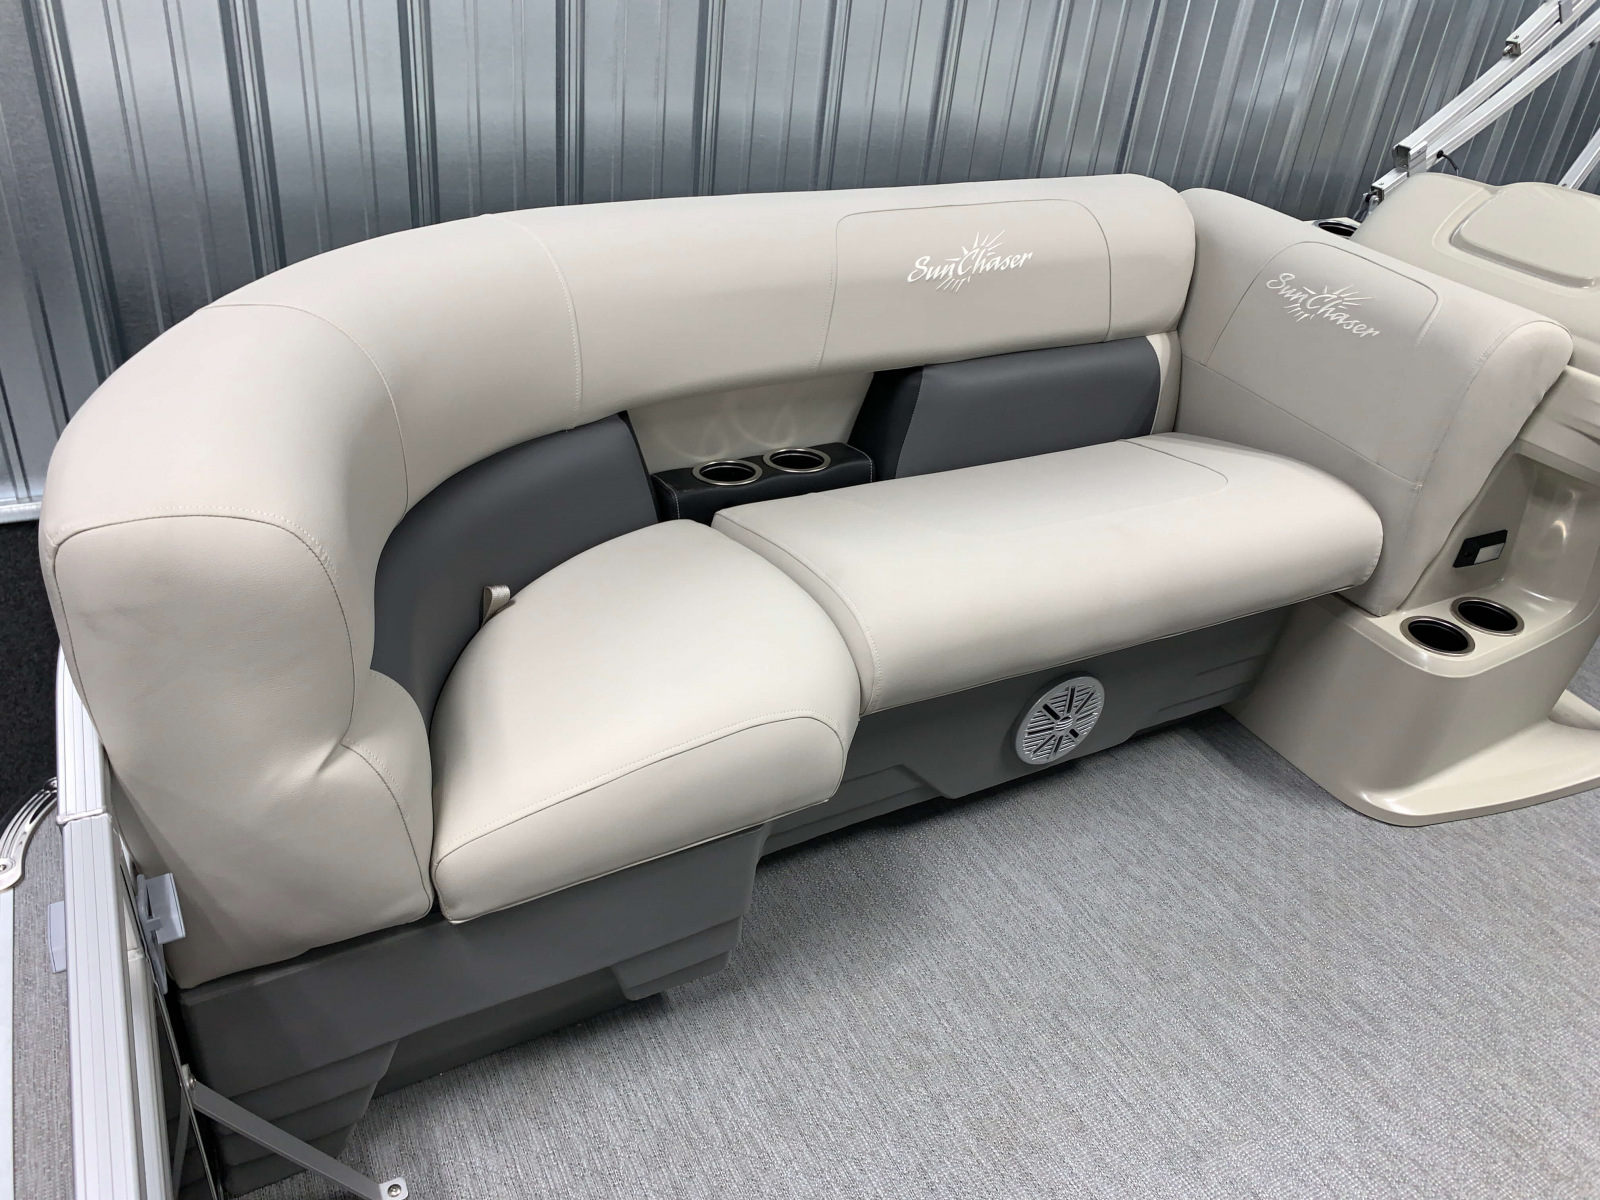 Interior Bow Seating of the 2021 SunChaser 16 LR Pontoon Boat